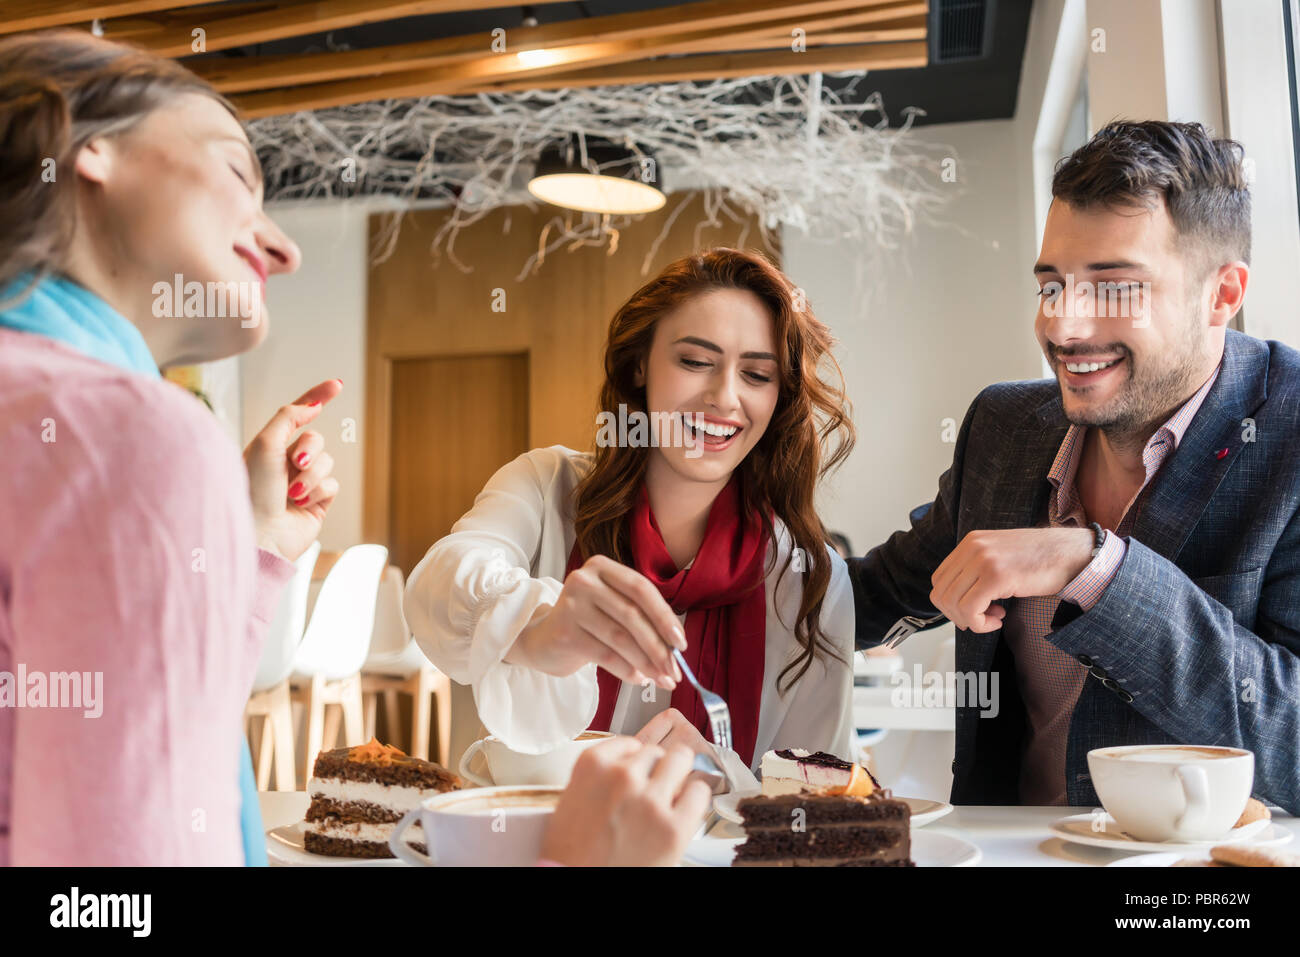 Three friends smiling while eating delicious cakes in their cheat day - Stock Image